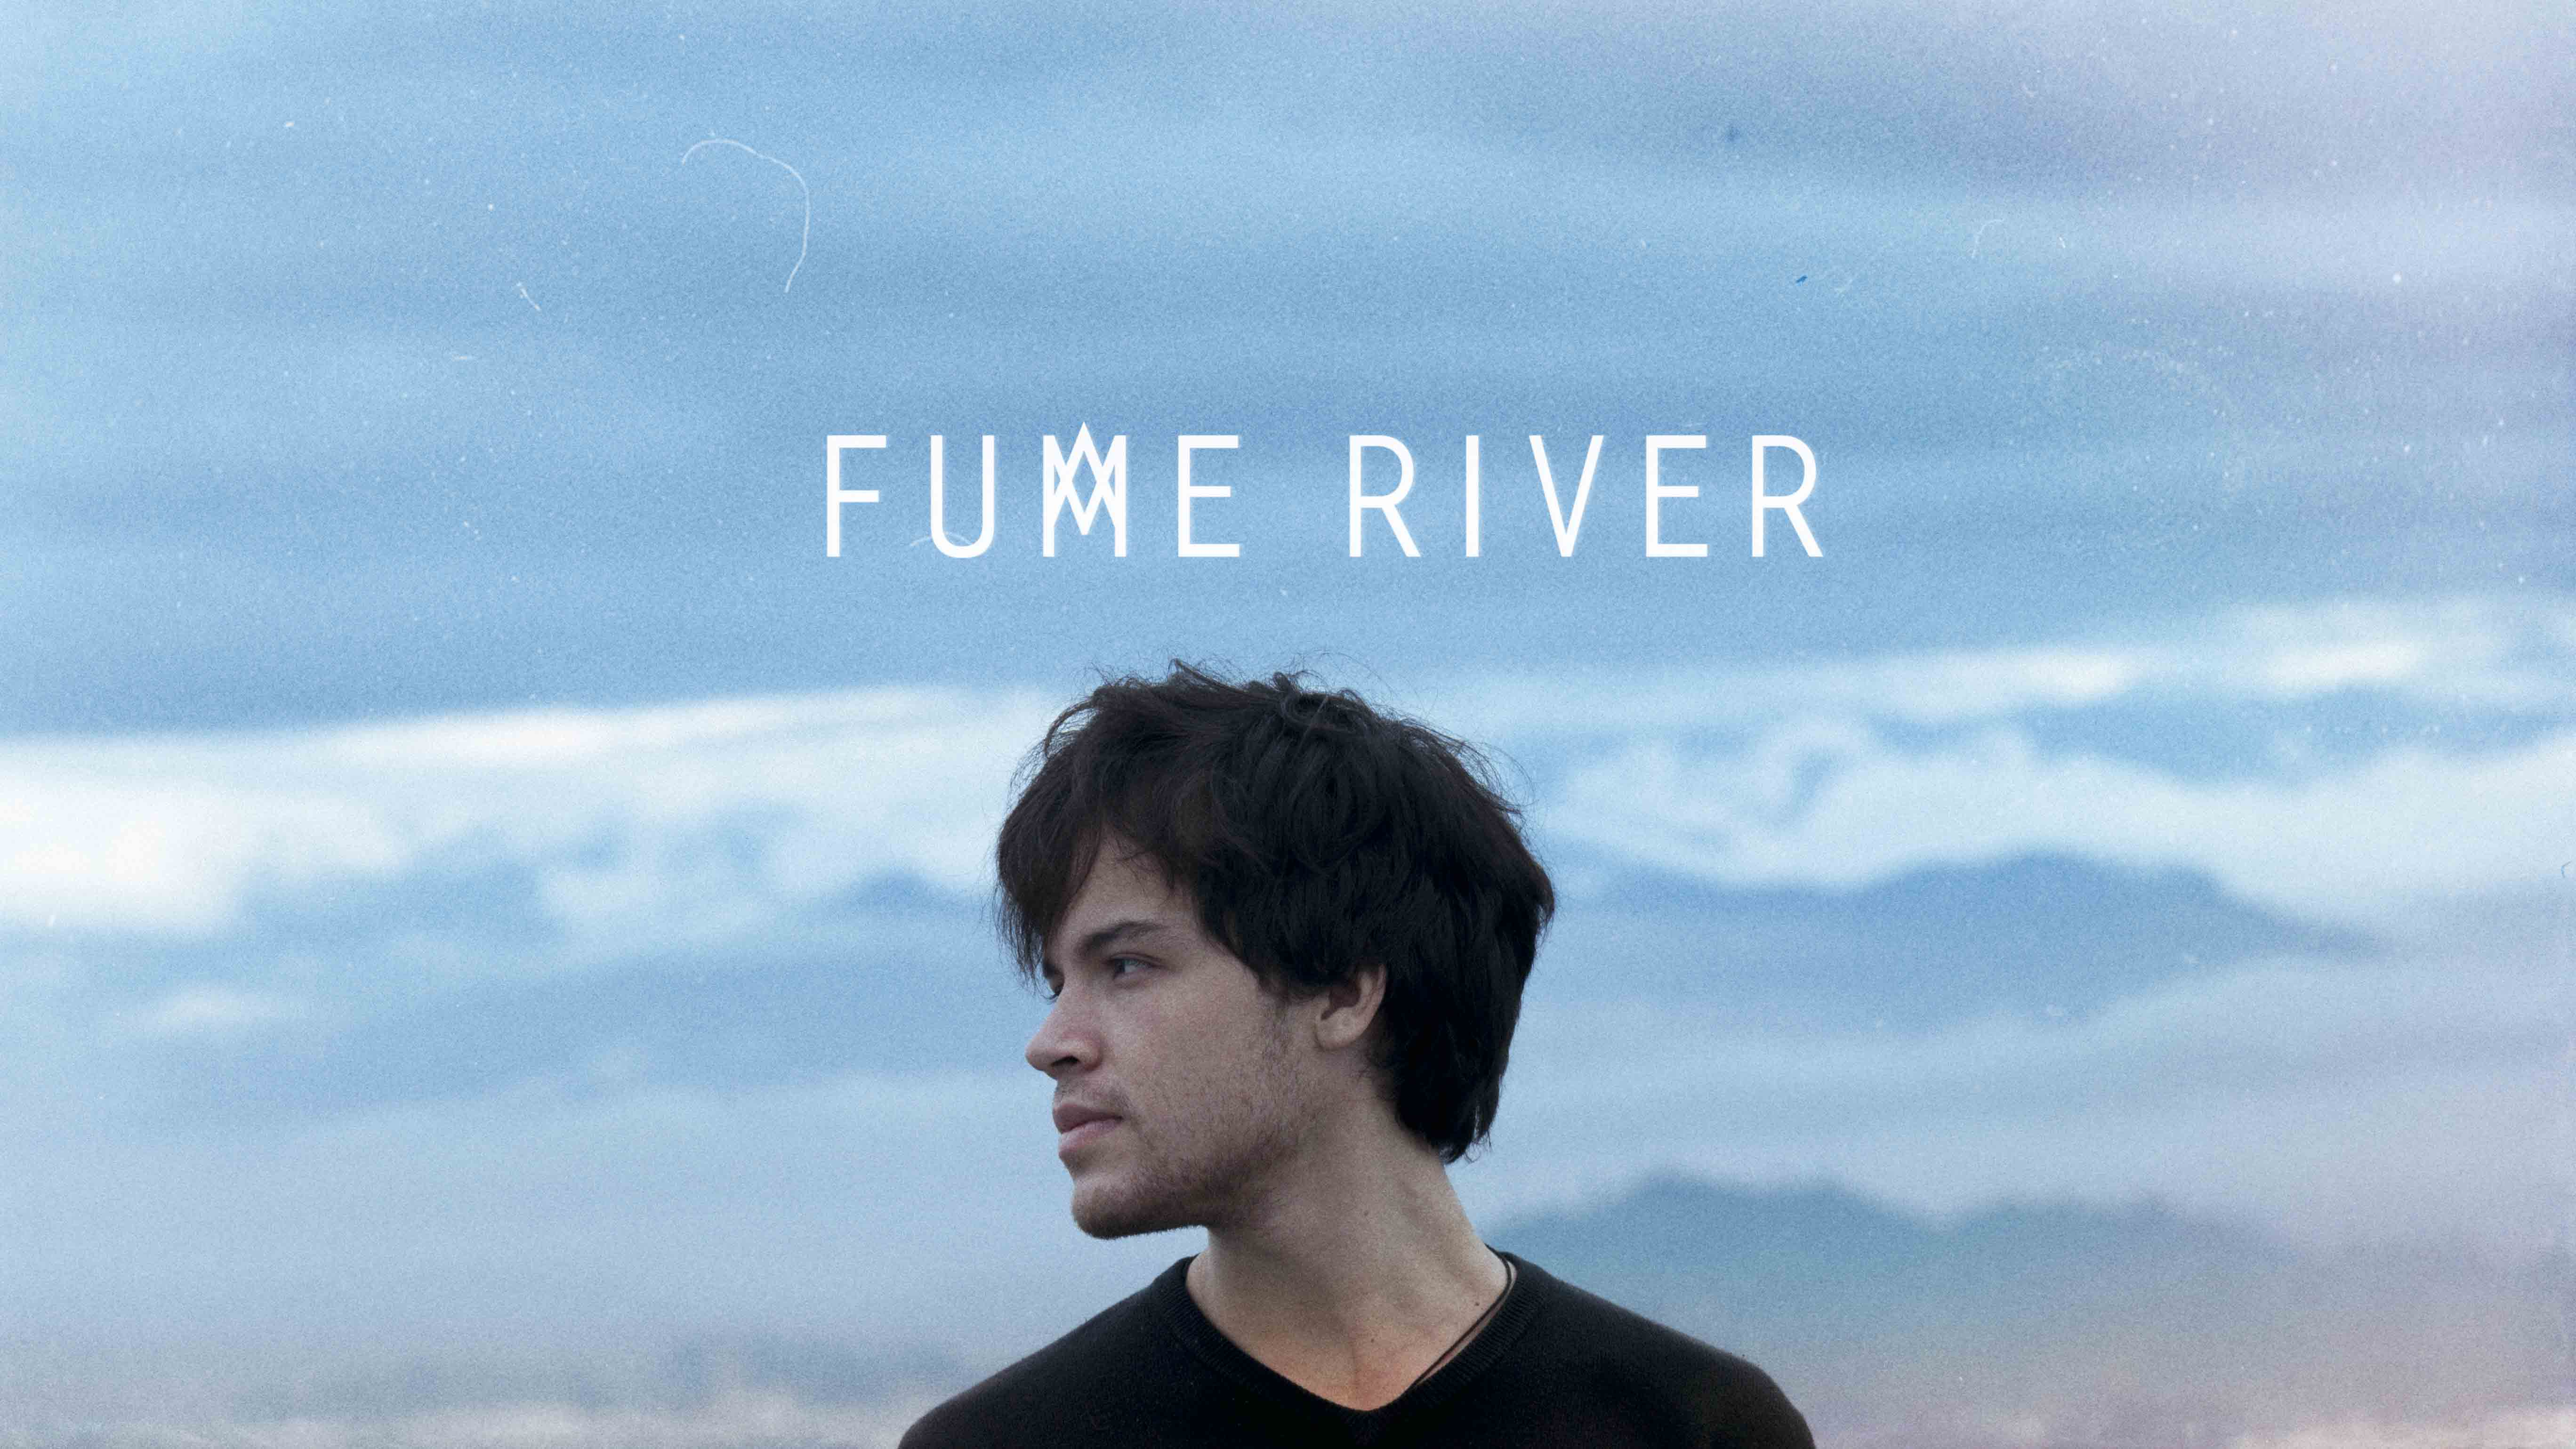 Ghost - Fume River